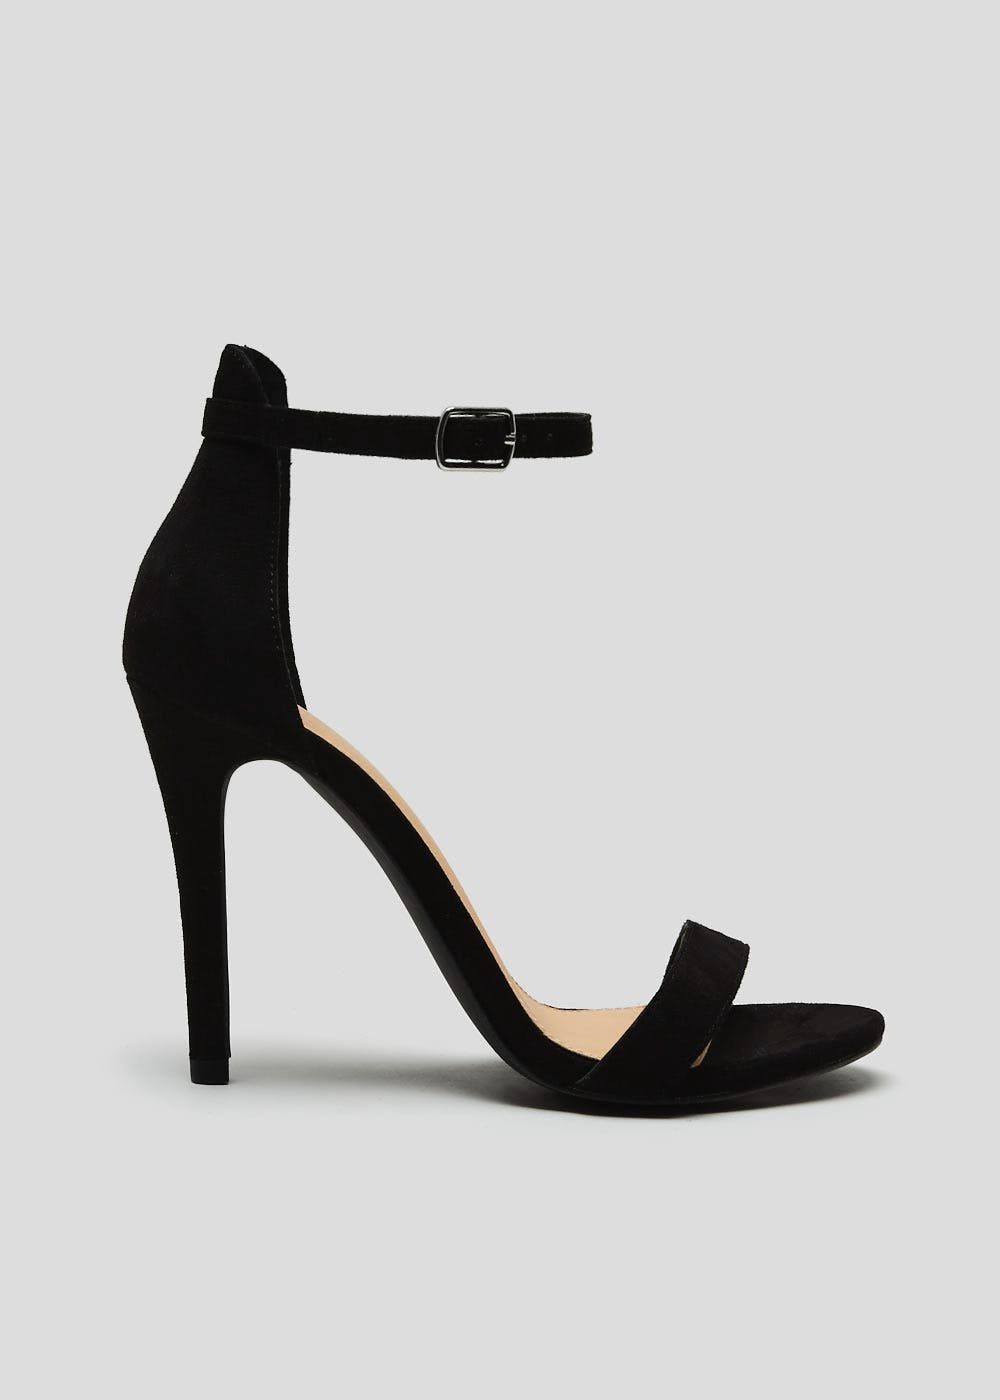 Barely There Strappy Heels – Black